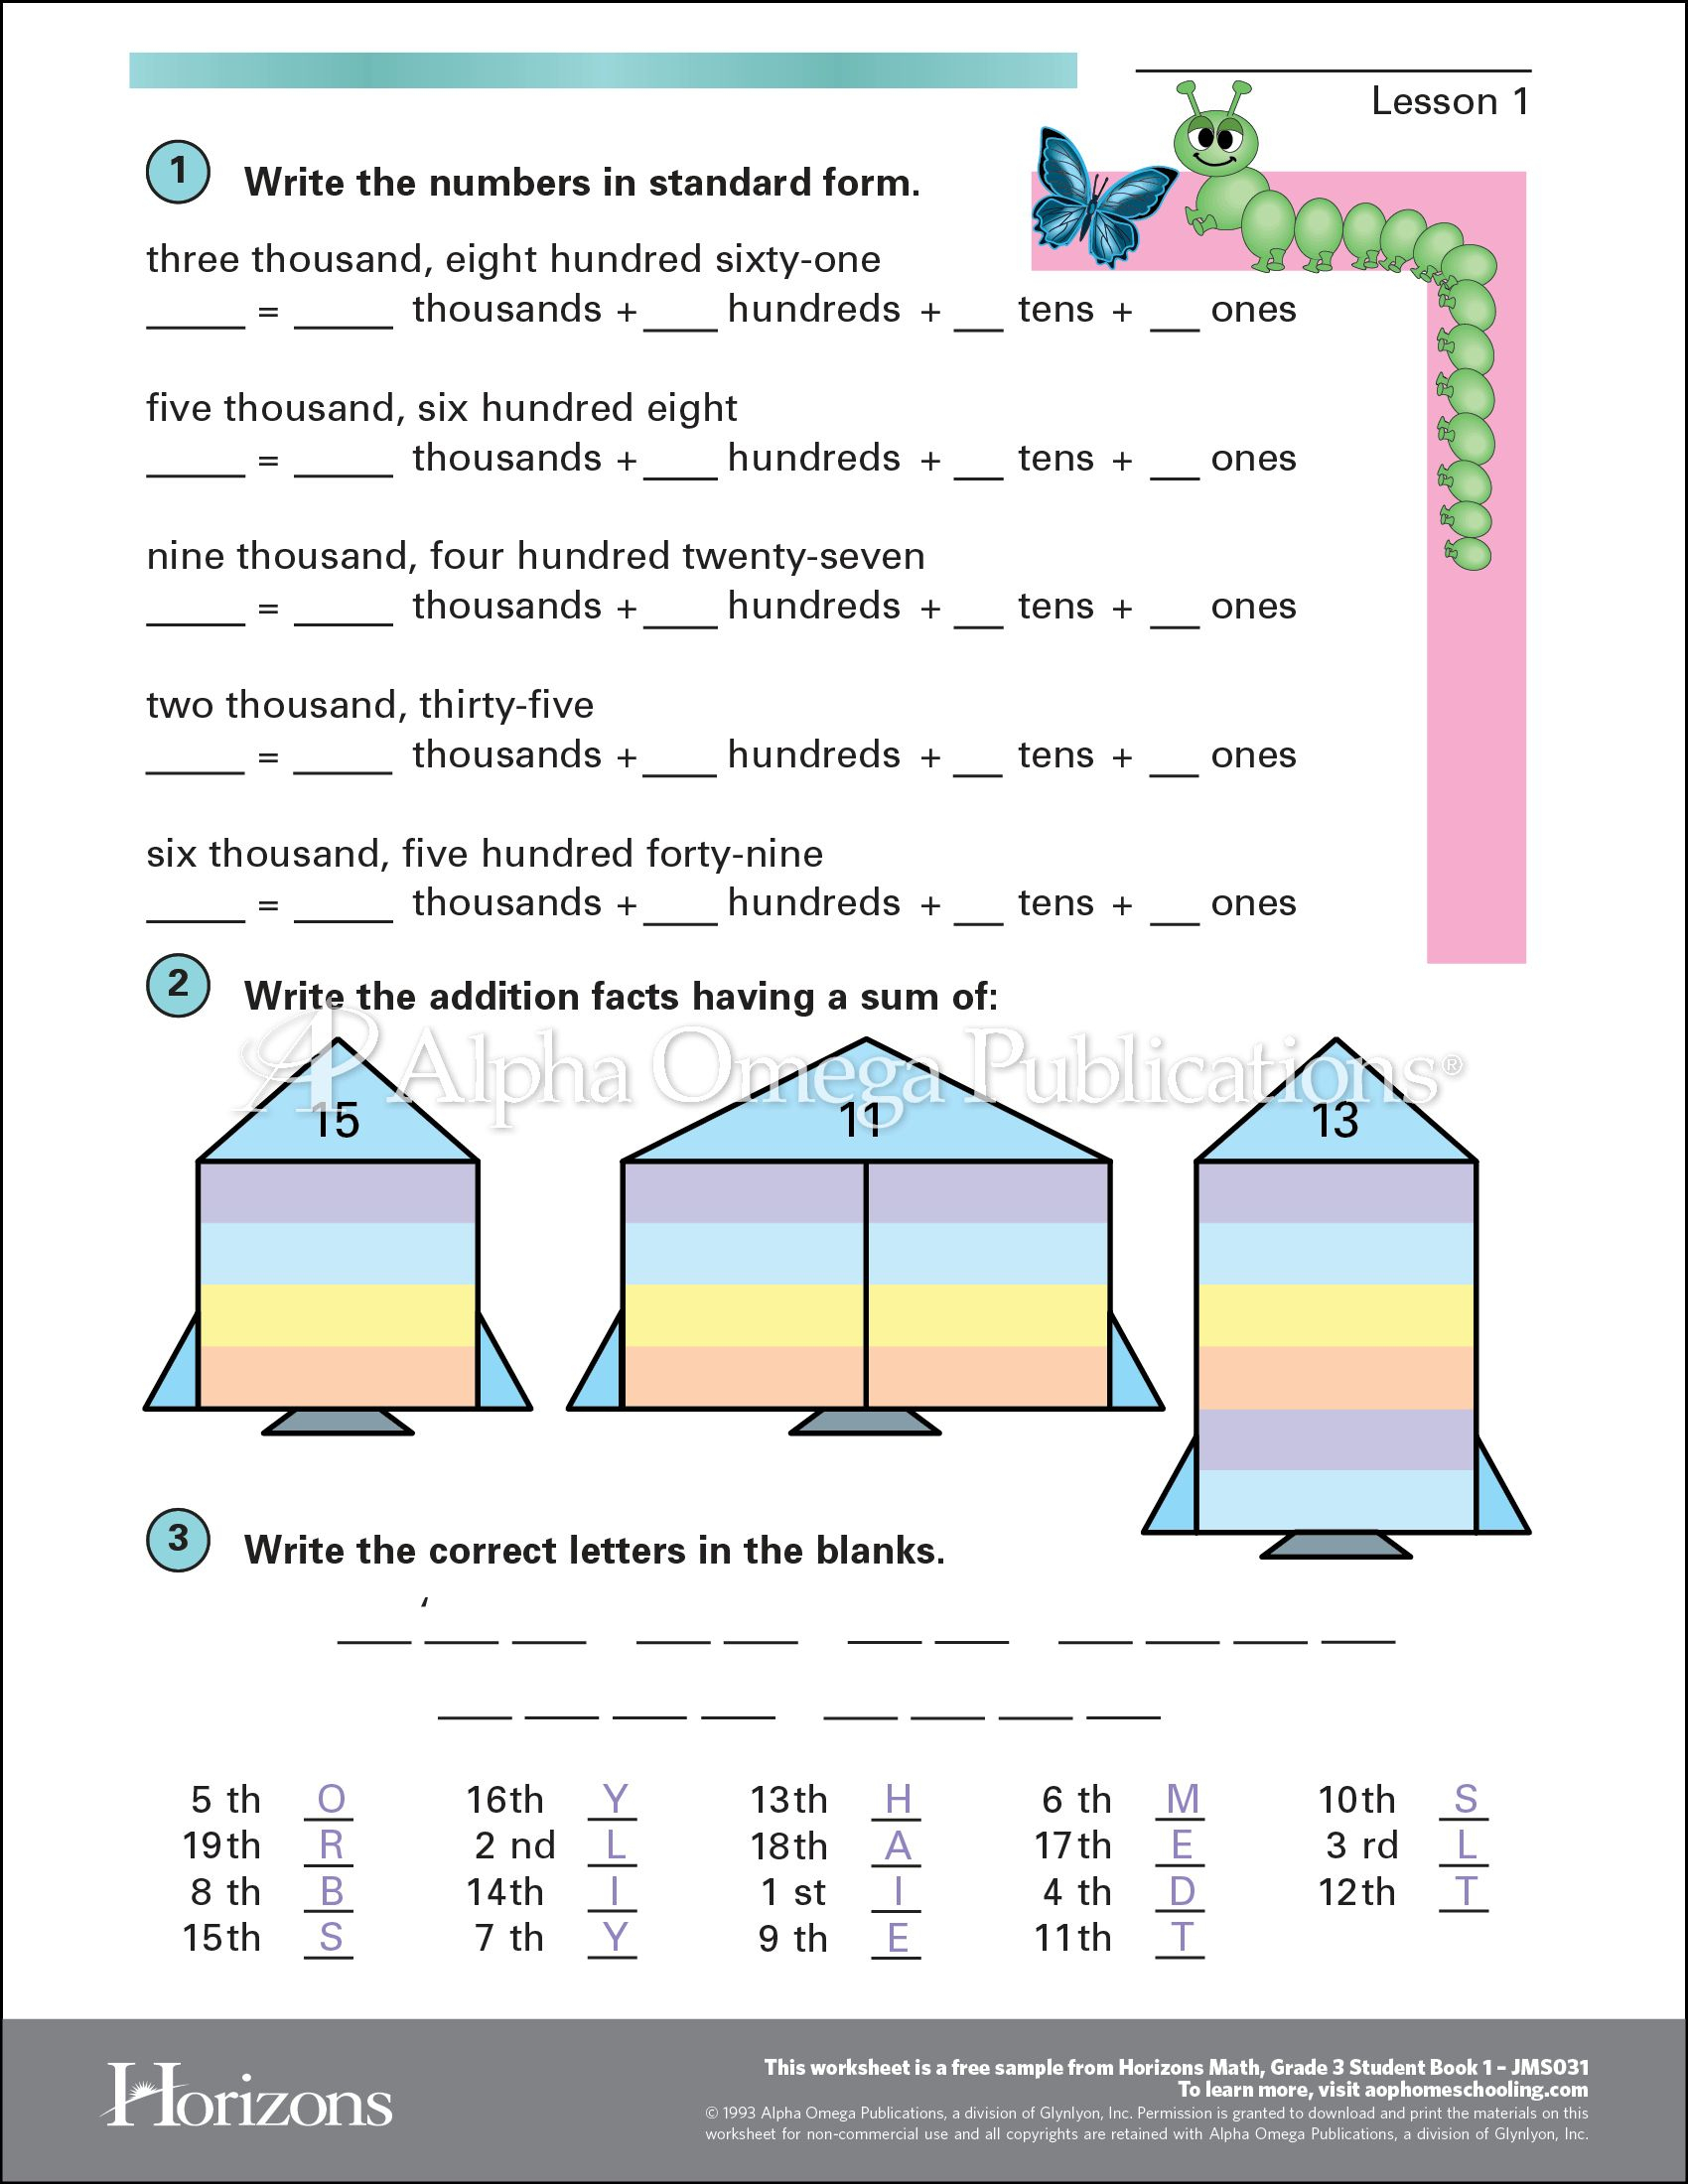 Aop Horizons Free Printable Worksheet Sample Page Download For - Free Homeschool Printable Worksheets